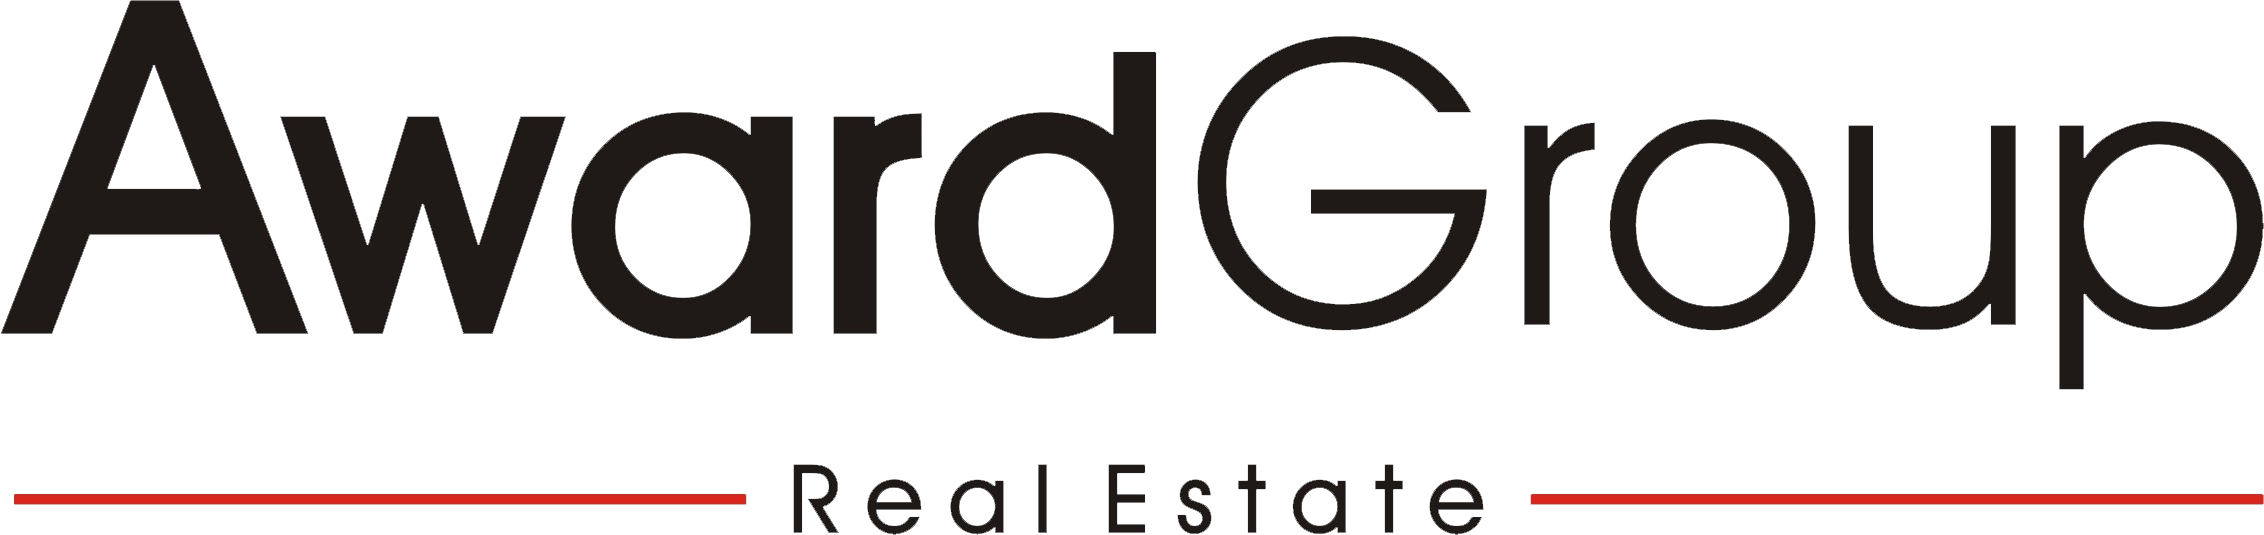 Award Group Real Estate